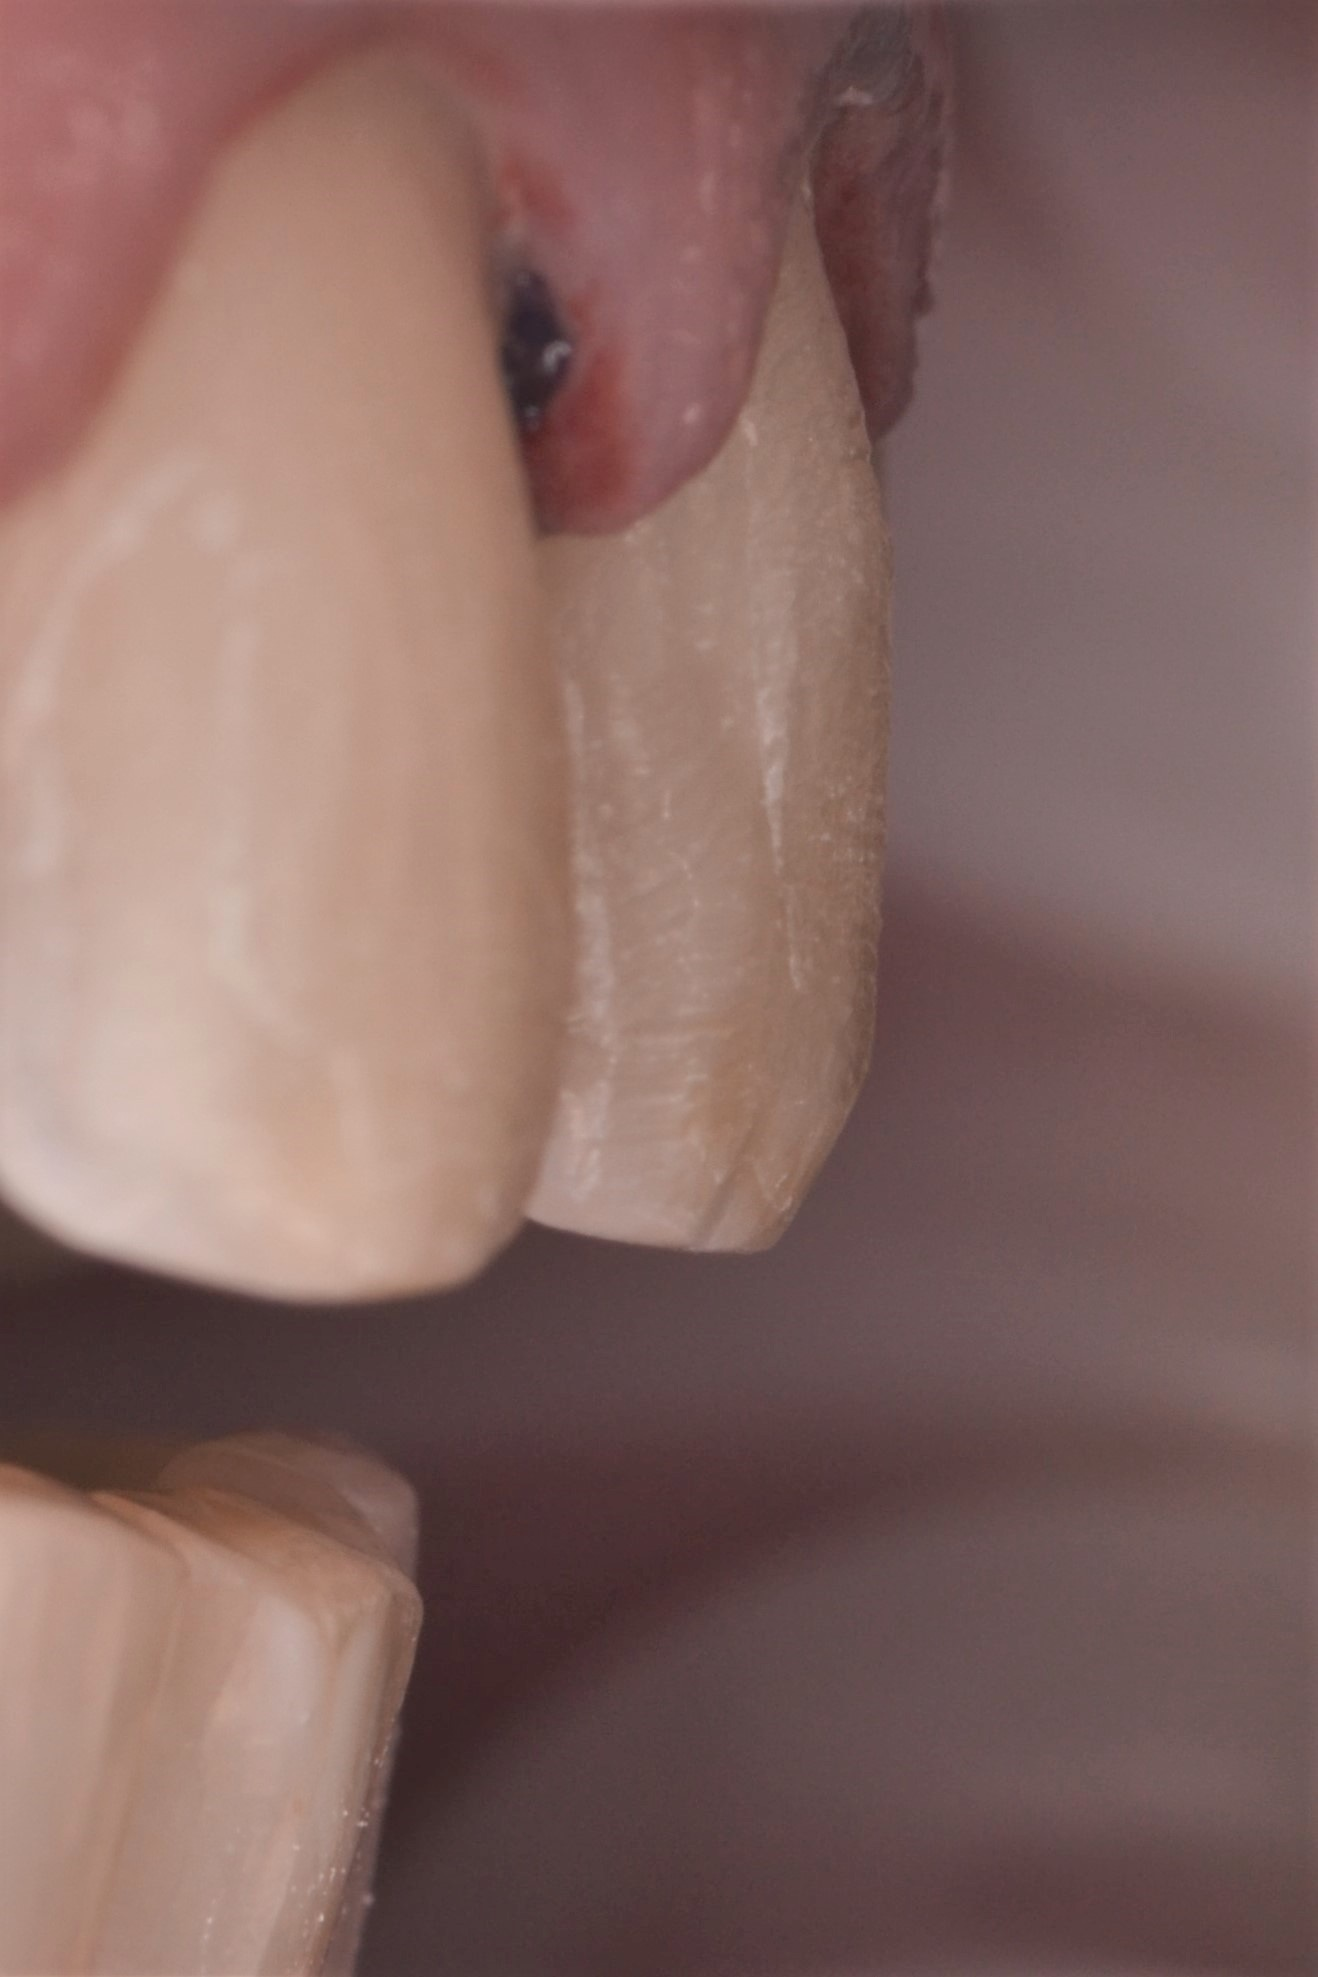 Figure 4e; The completed facial reduction of the maxillary left central incisor.